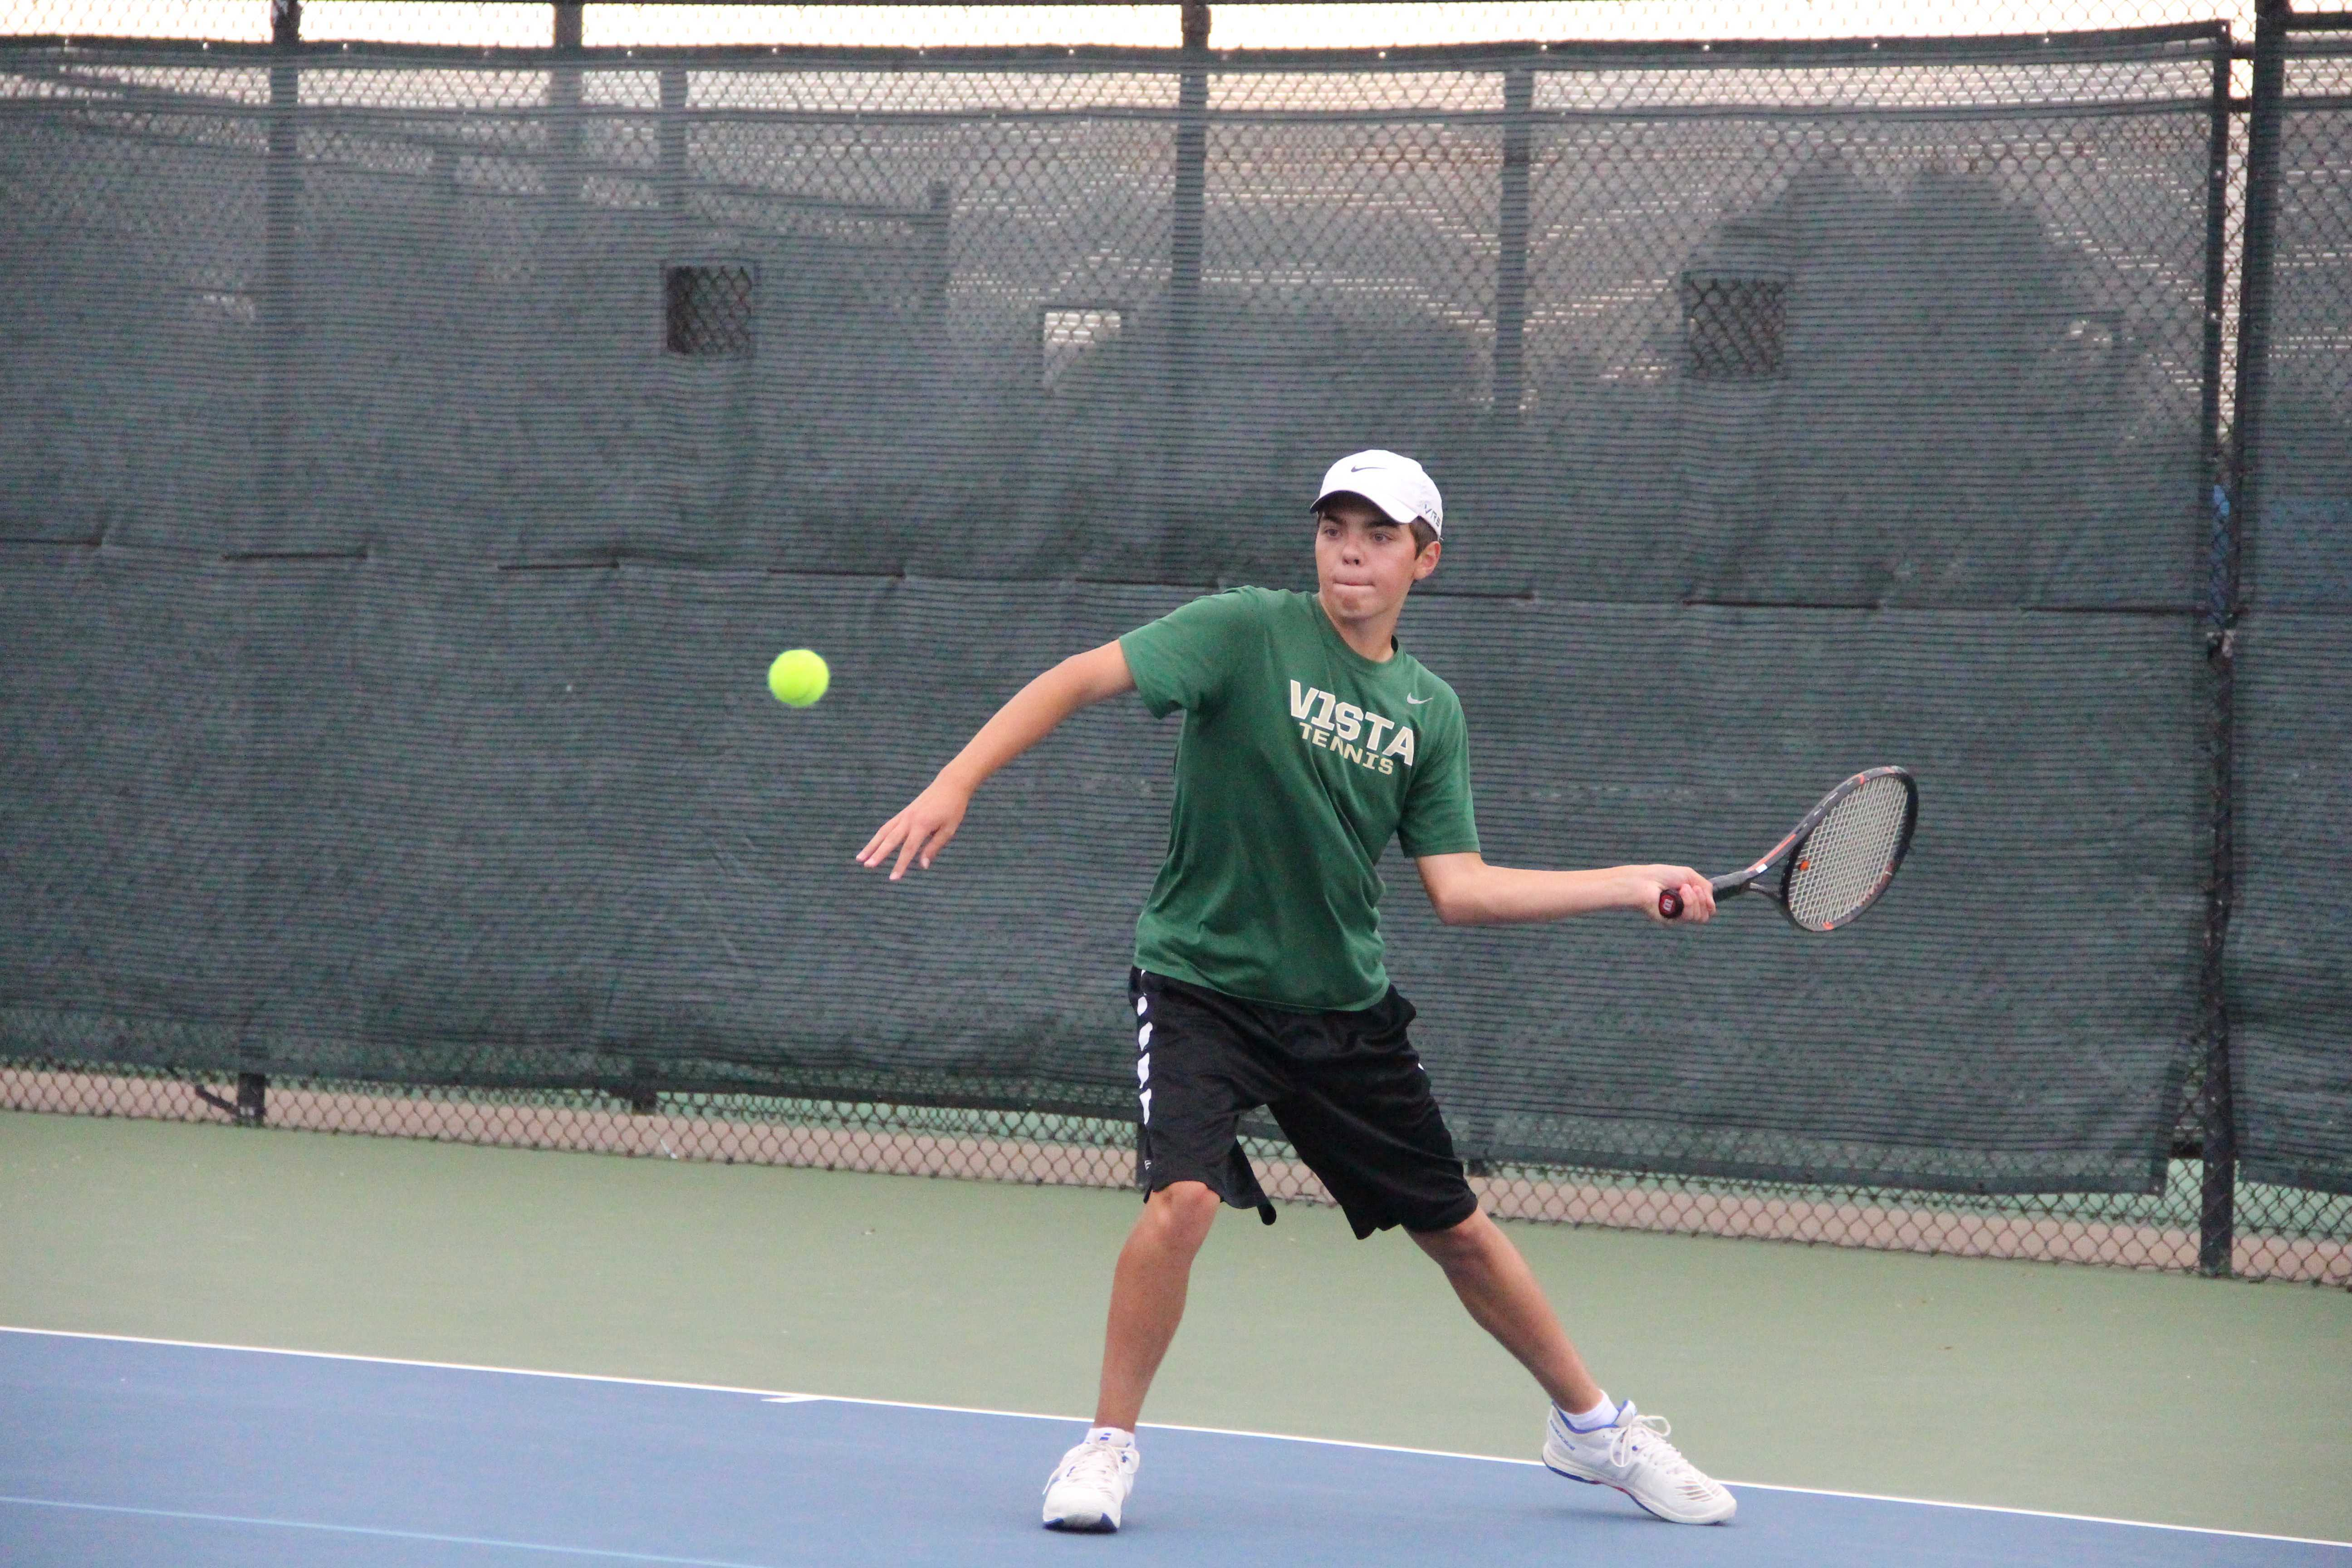 PHOTOS: Men's Varsity Tennis vs. ThunderRidge